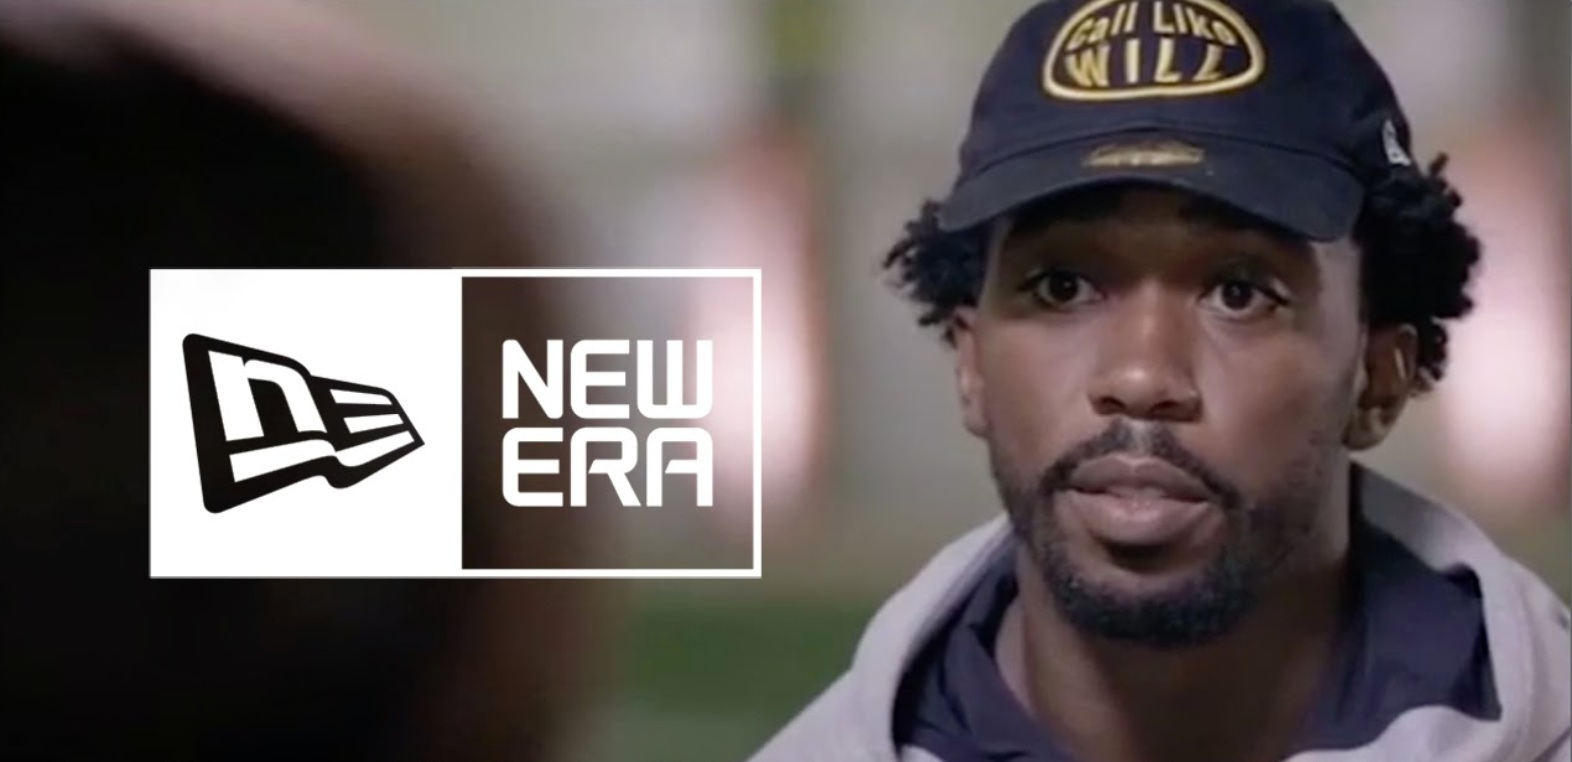 New Era made limited-edition merch from the film that was repped by NFL players. NFL QB Tyrod Taylor even wore his 'Call Like Will' hat on HBO's Hard Knocks